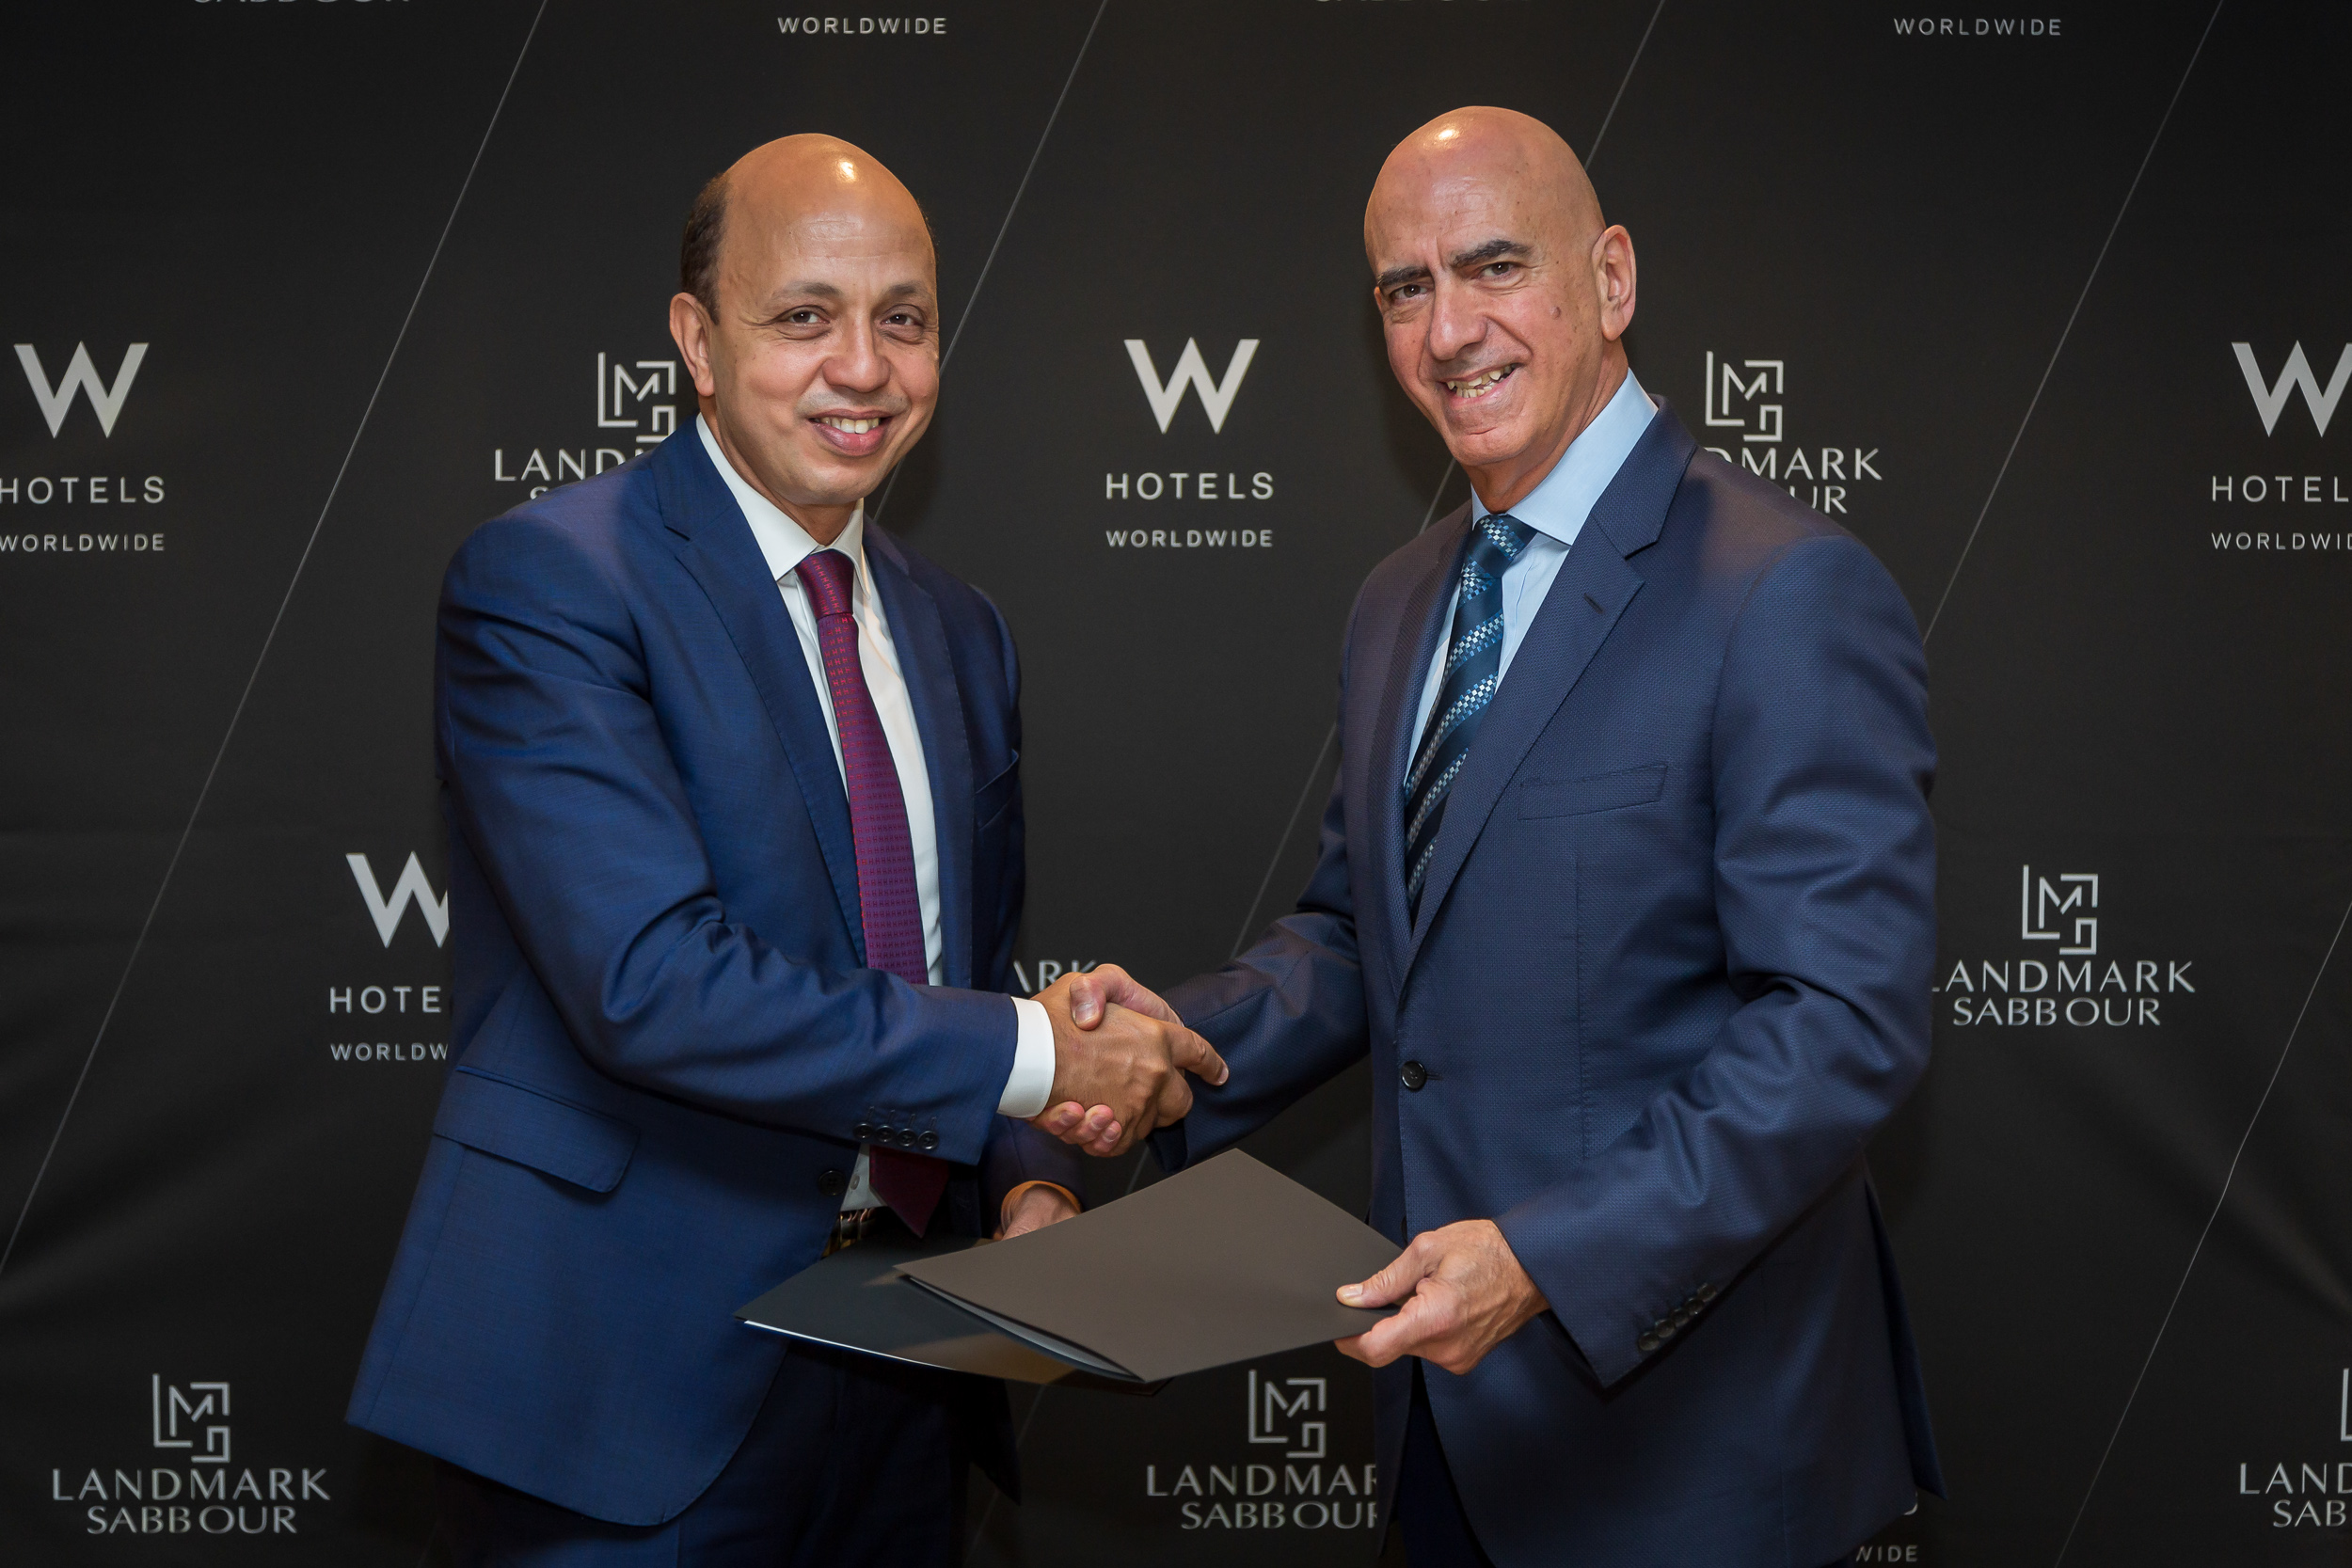 Marriott International inks a deal with Landmark Sabbour to open a W Hotel in Cairo